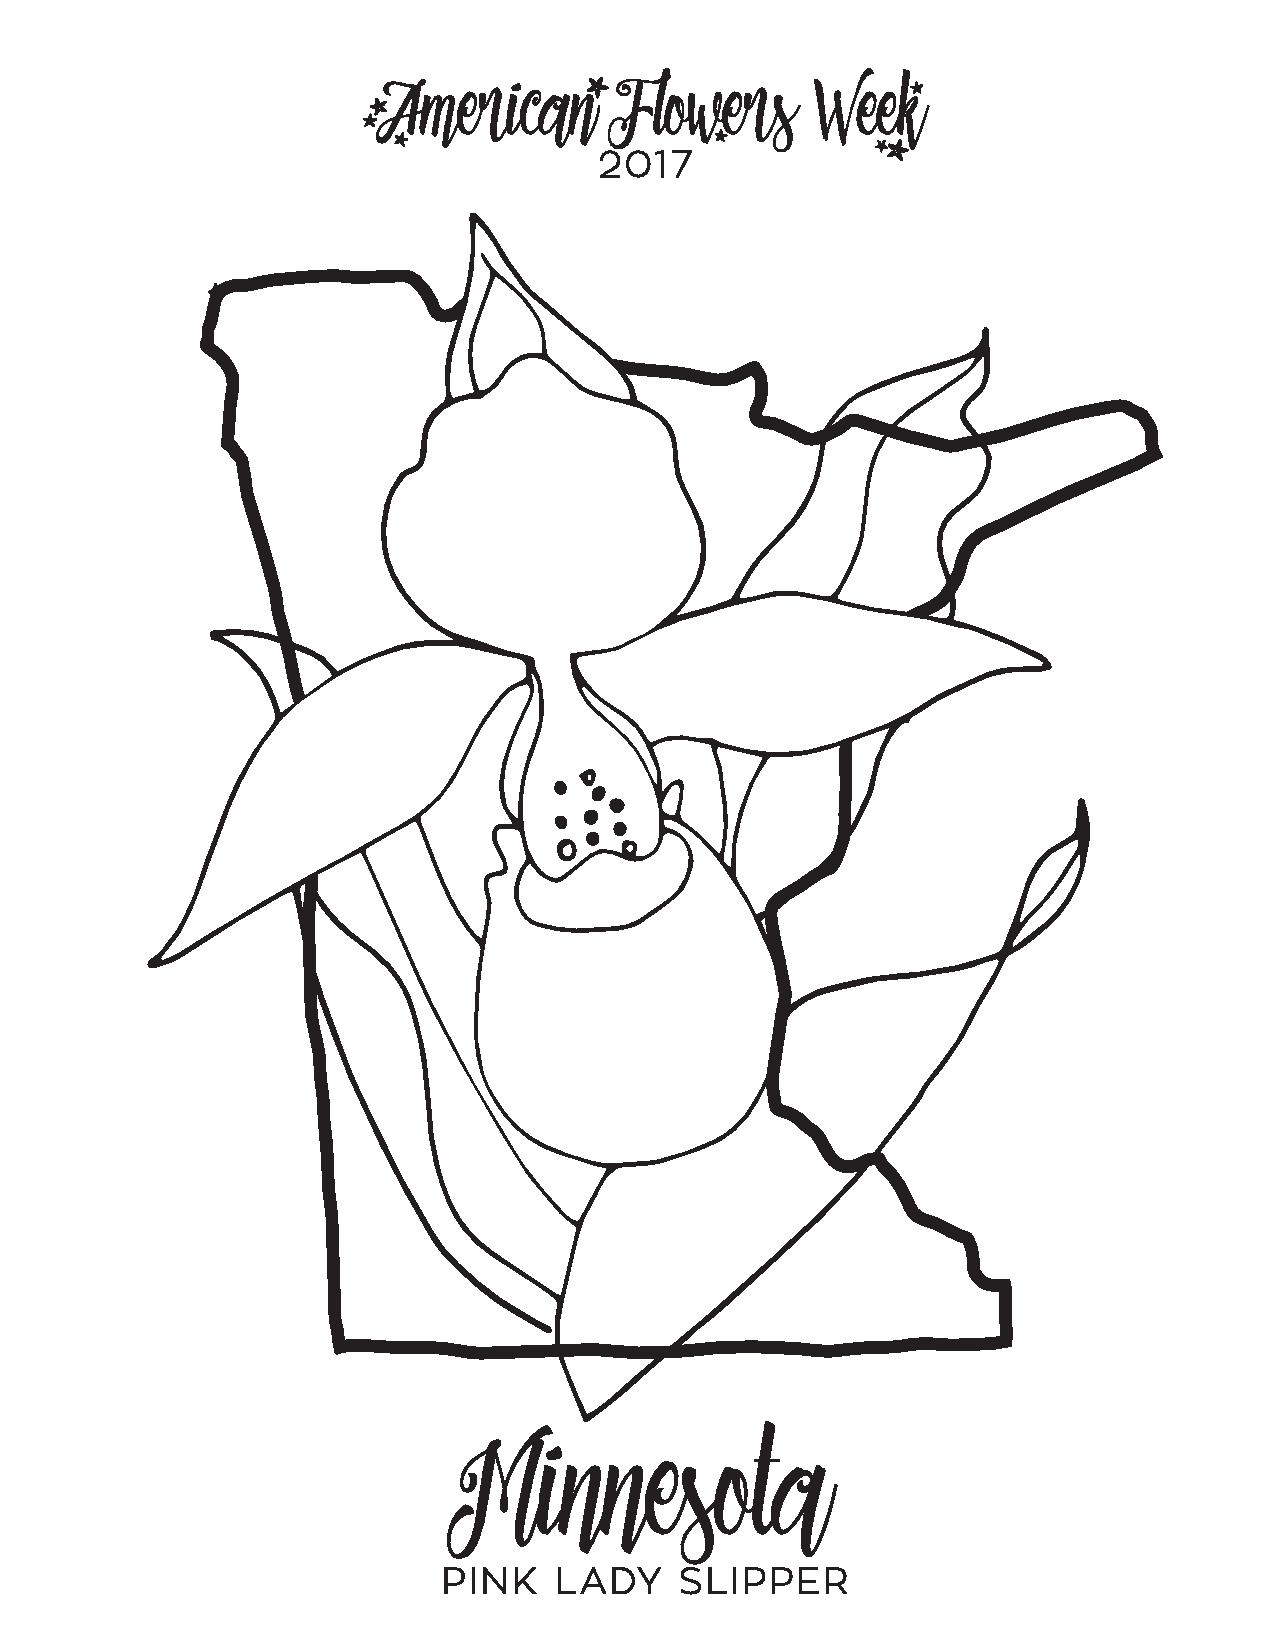 50 State Flowers Free Coloring Pages American Flowers Week